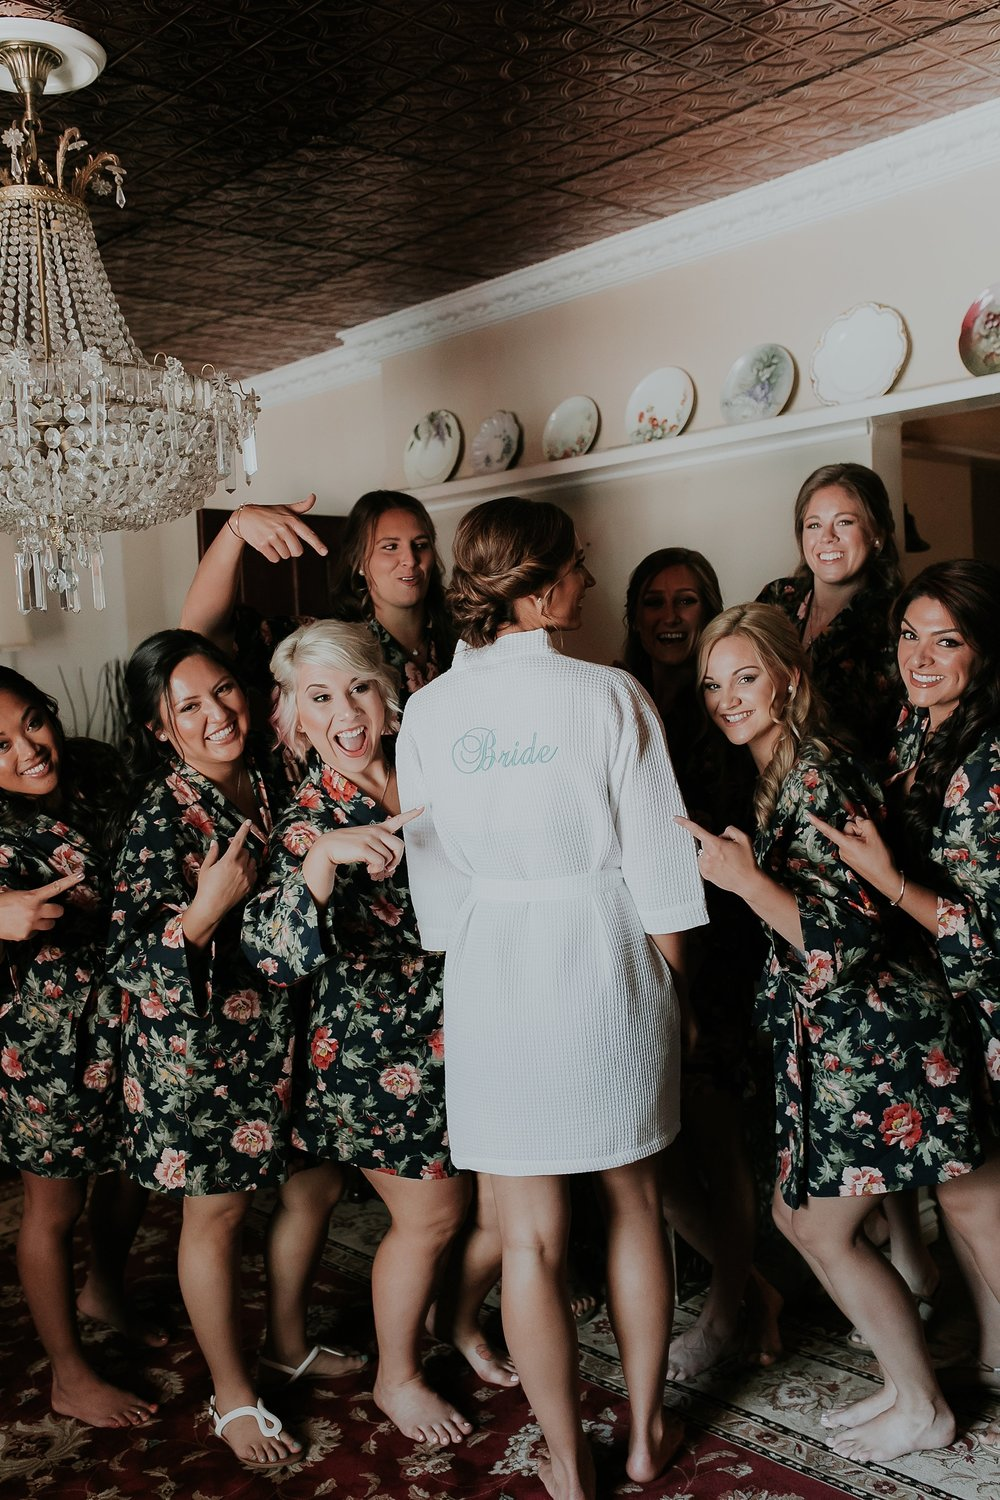 Alicia+lucia+photography+-+albuquerque+wedding+photographer+-+santa+fe+wedding+photography+-+new+mexico+wedding+photographer+-+santa +fe+wedding+-+albuquerque+wedding+-+southwest+wedding+-+bridesmaid+gifts+-+wedding+party_0030.jpg